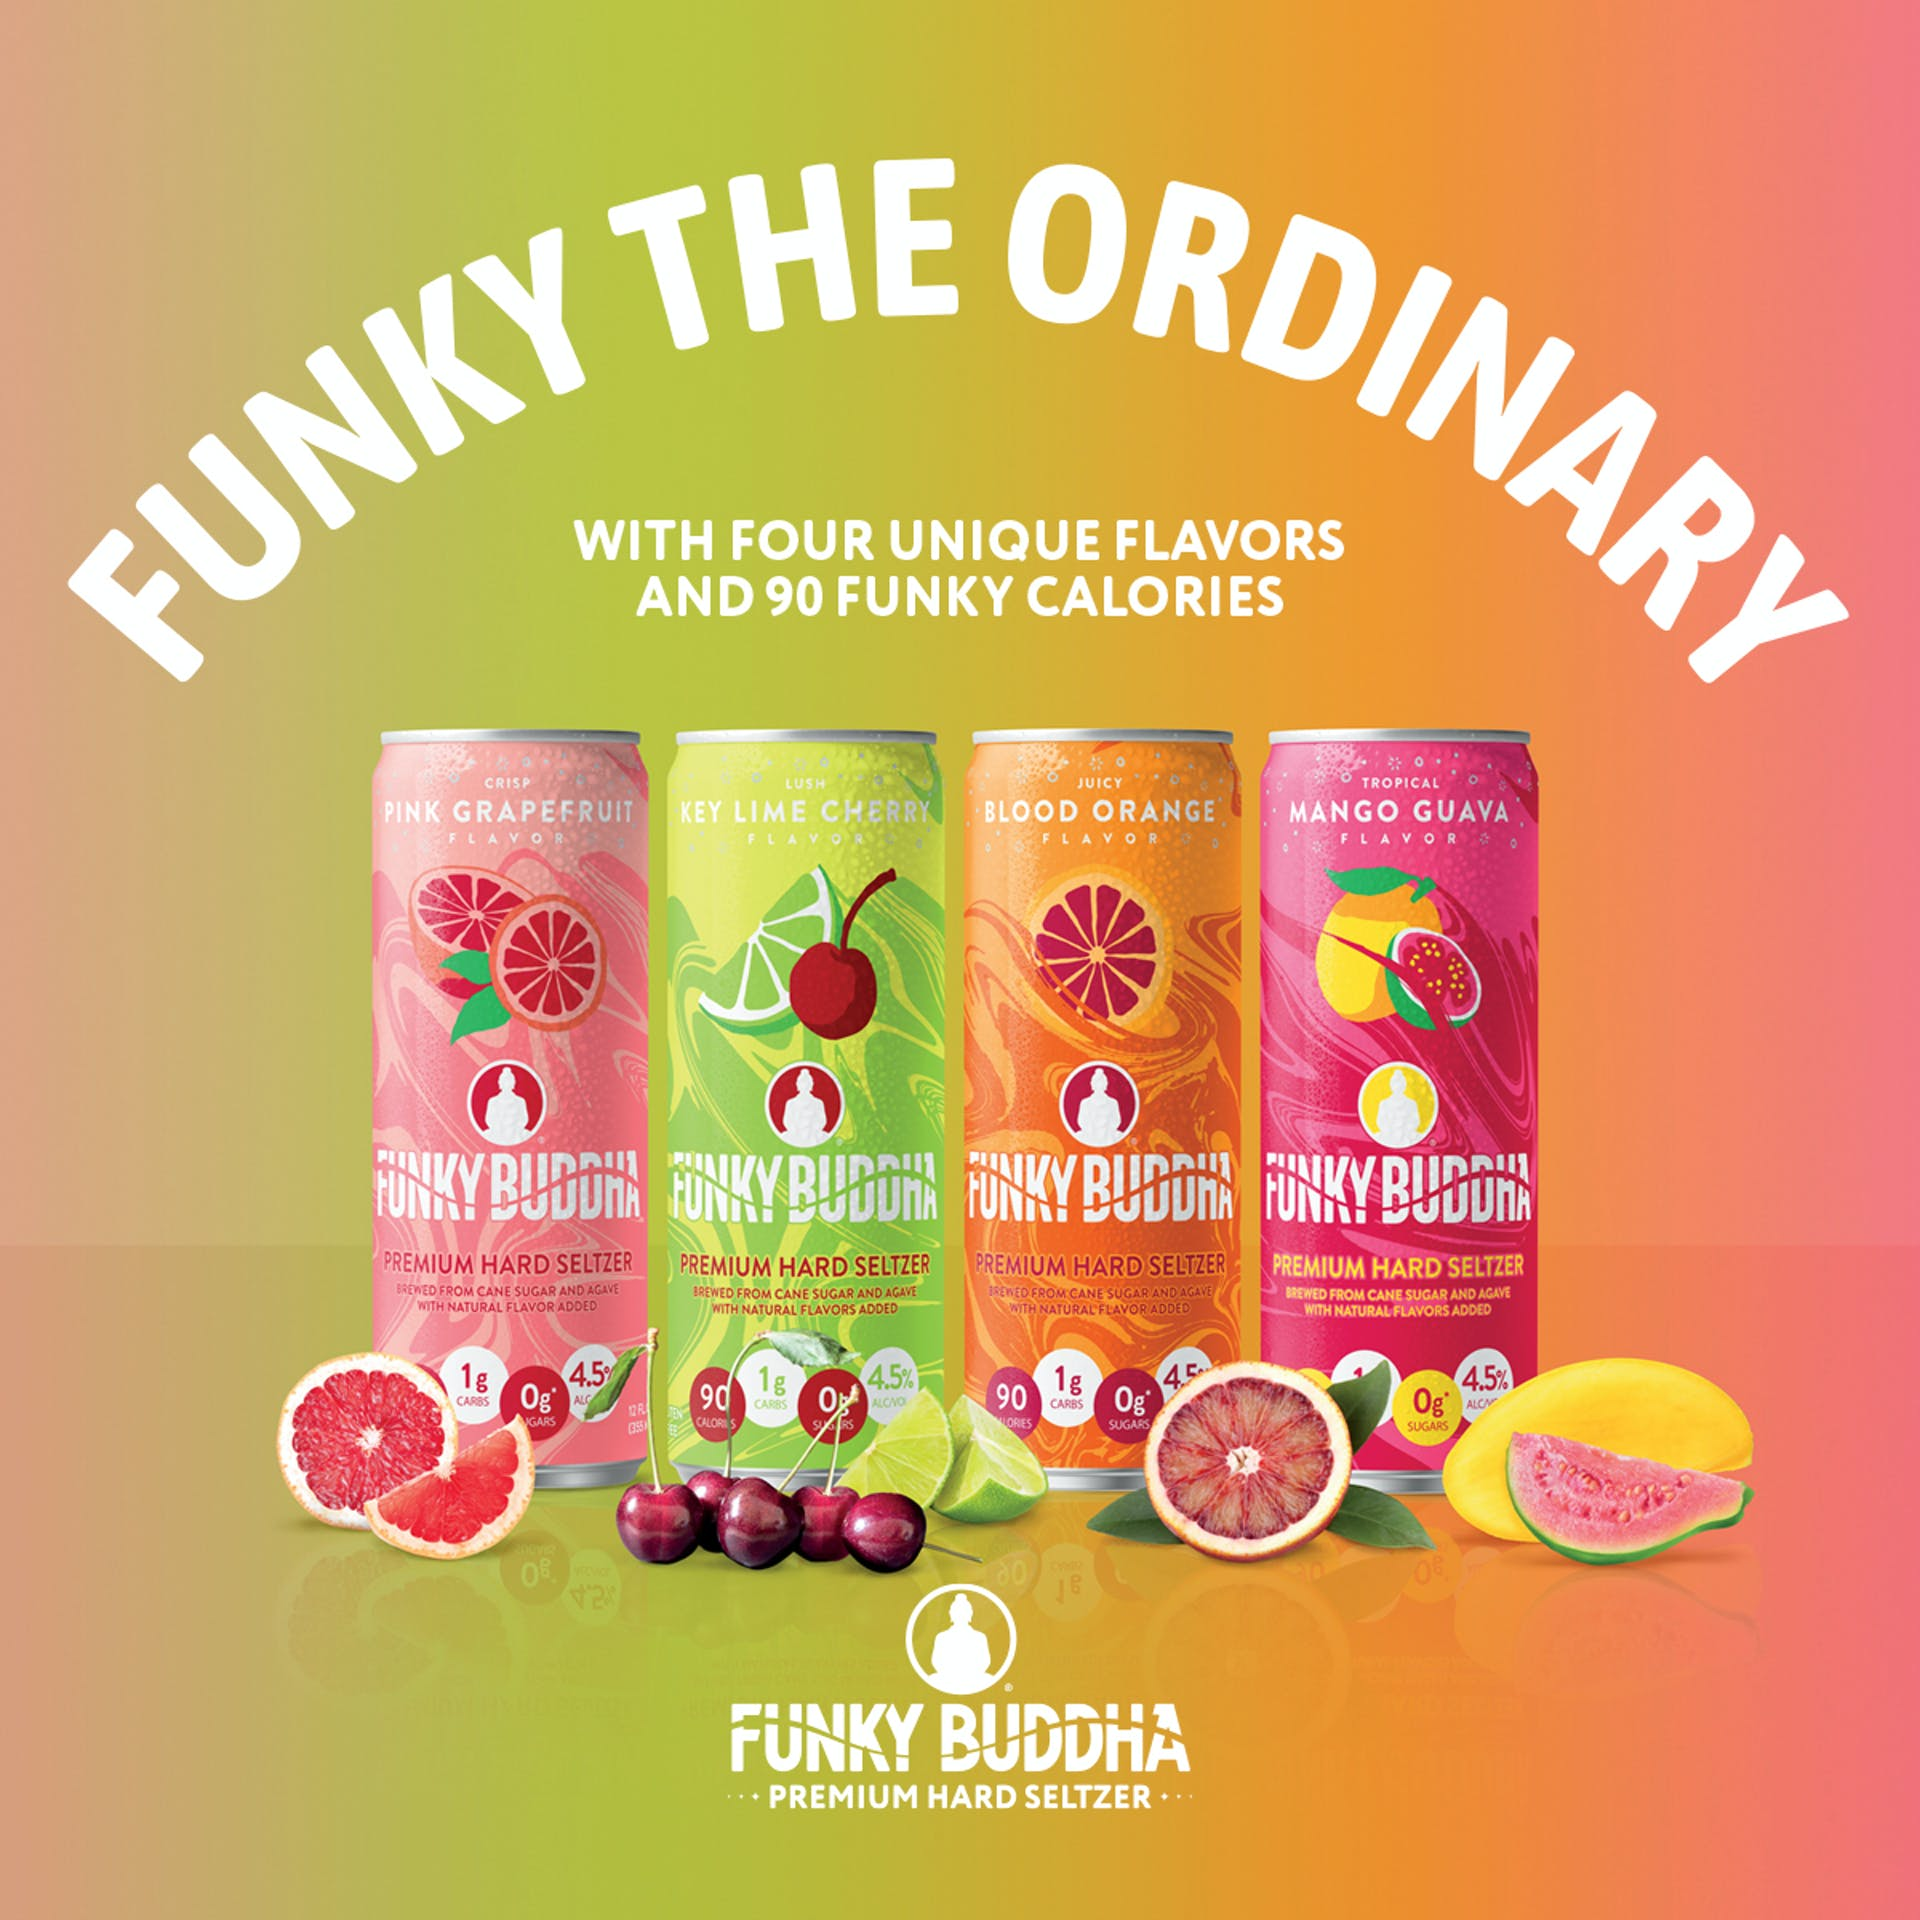 FBB_Funky_the_ordinary_mobile_ad_1200x1200